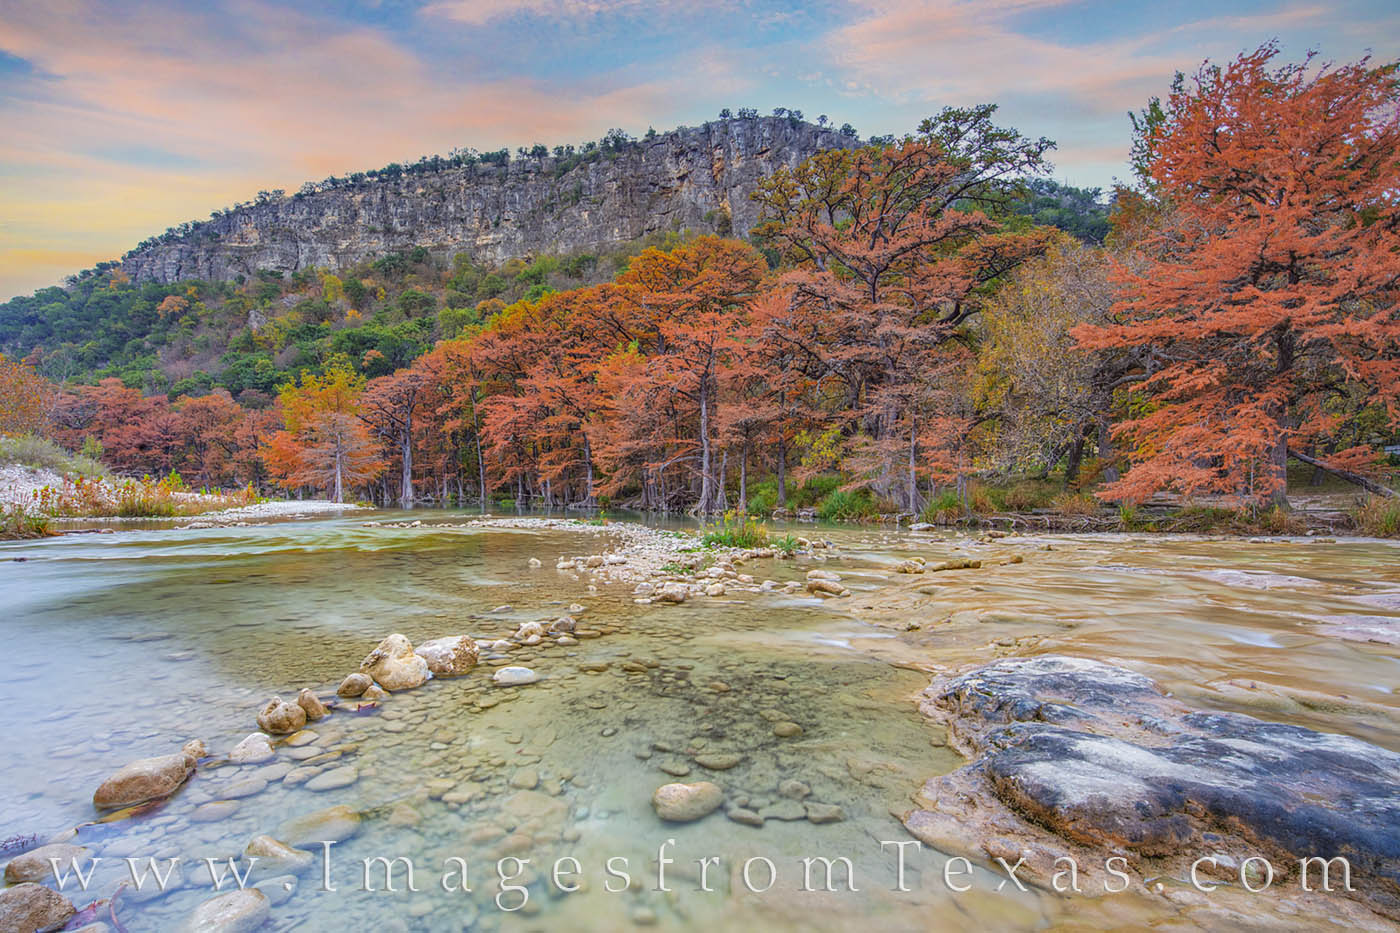 garner state park, frio river, fall colors, cypress, november, texas state parks, autumn, prints, photo